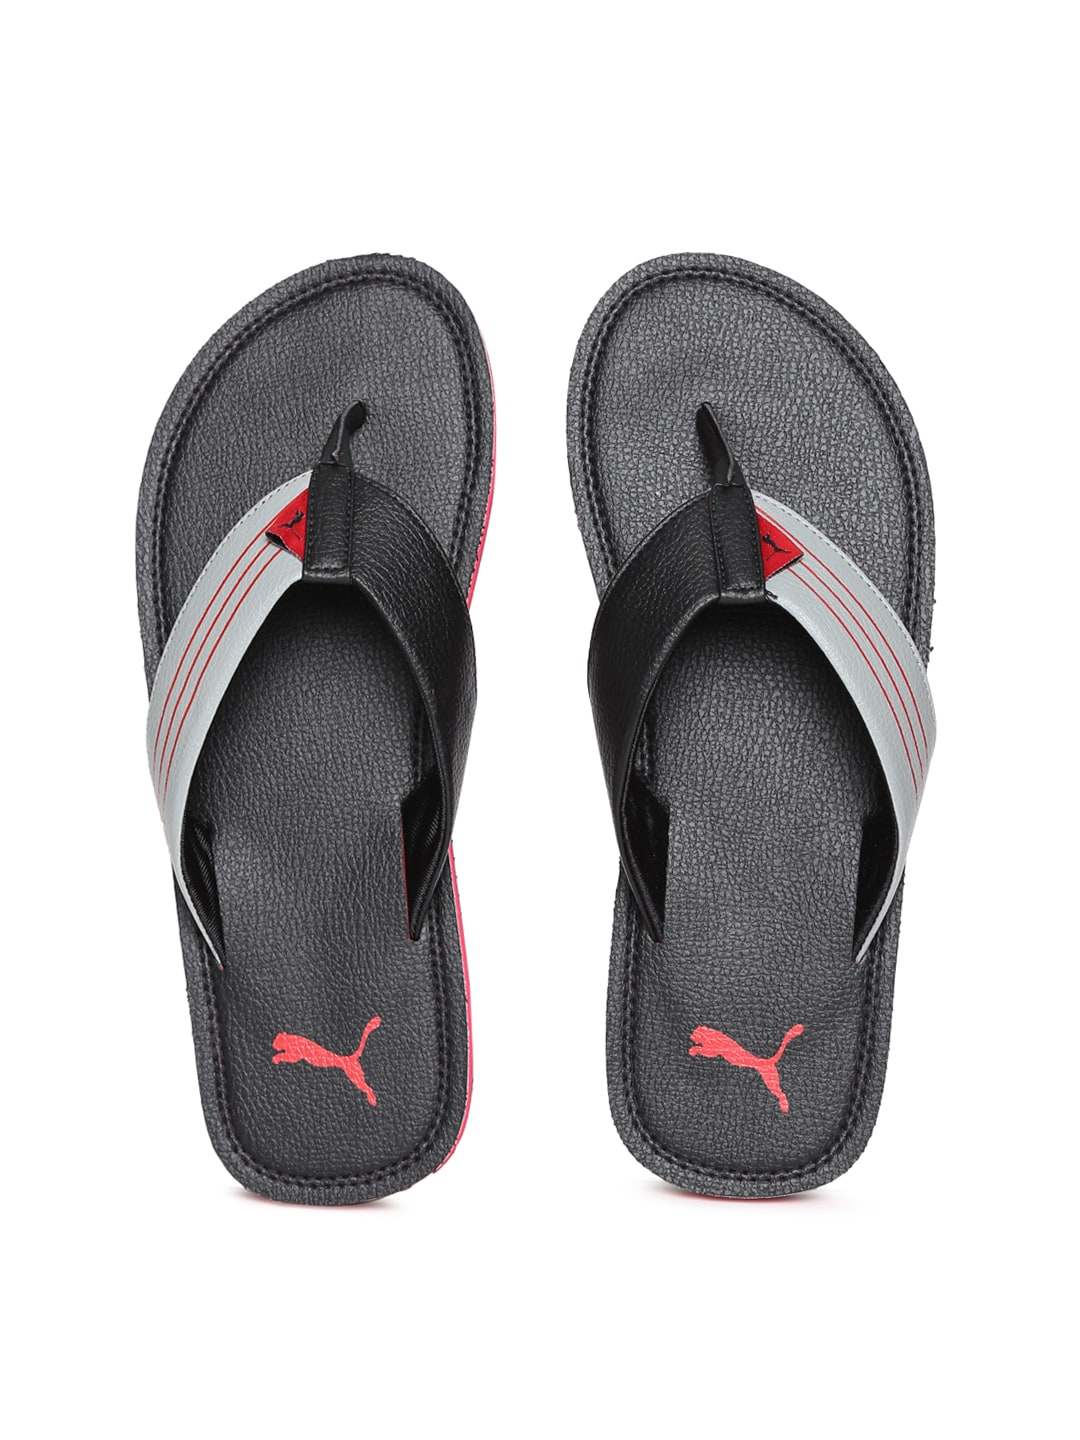 Puma Men Black & Grey Blink Duo IDP Flip-Flops image